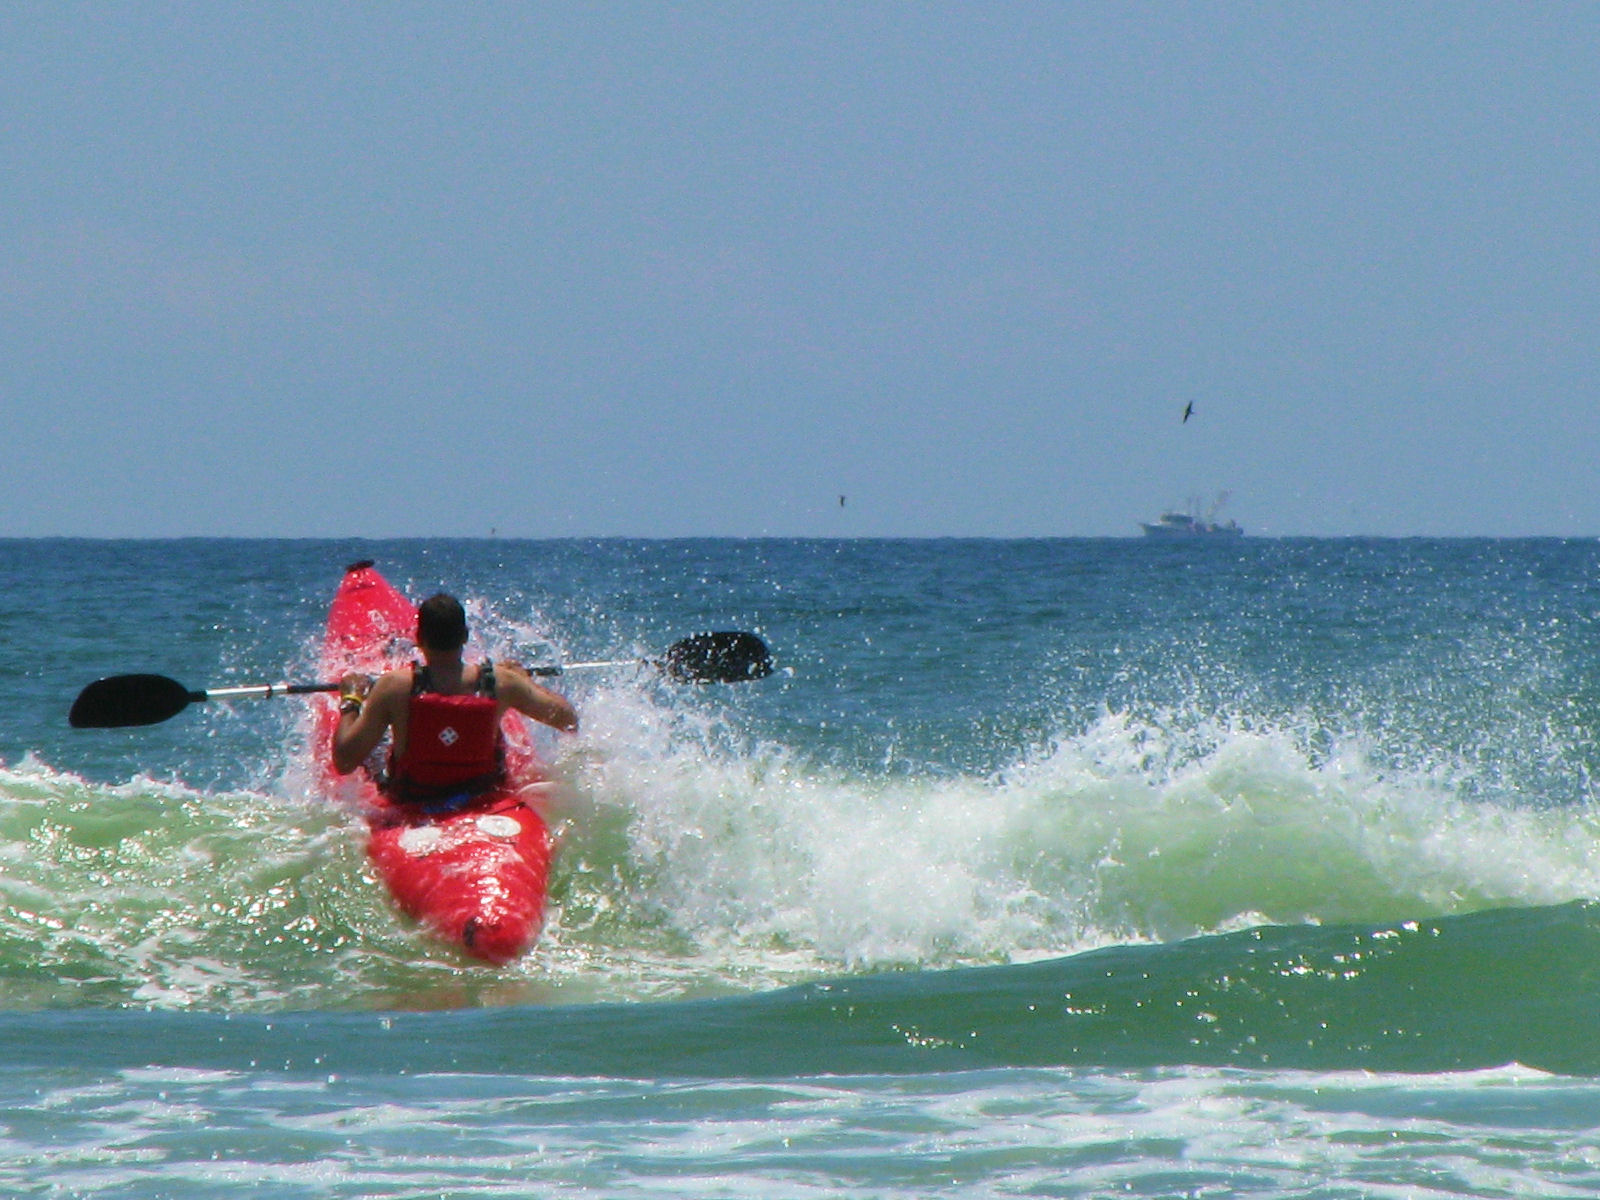 mustang island, mustang island state park, texas, gulf of mexico, sea-kayaking